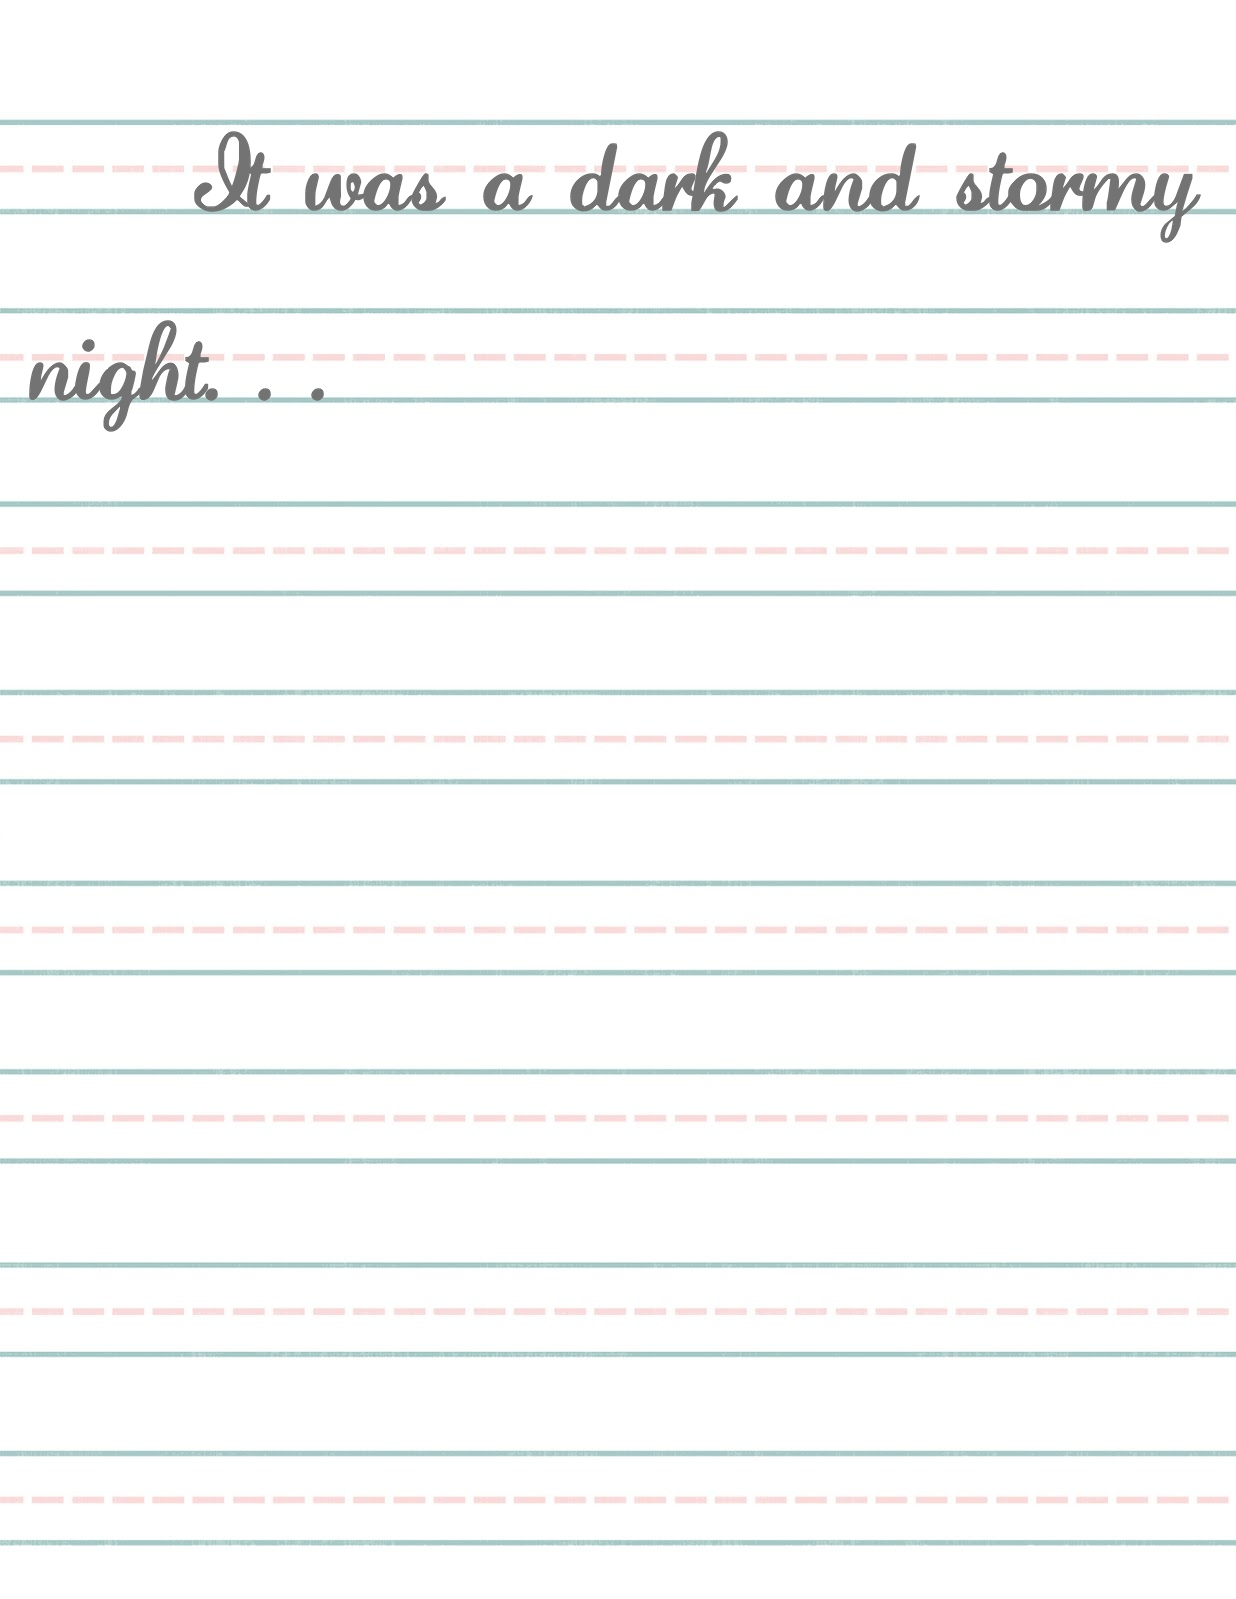 Elementary Lined Paper Template  Can You Print On Lined Paper